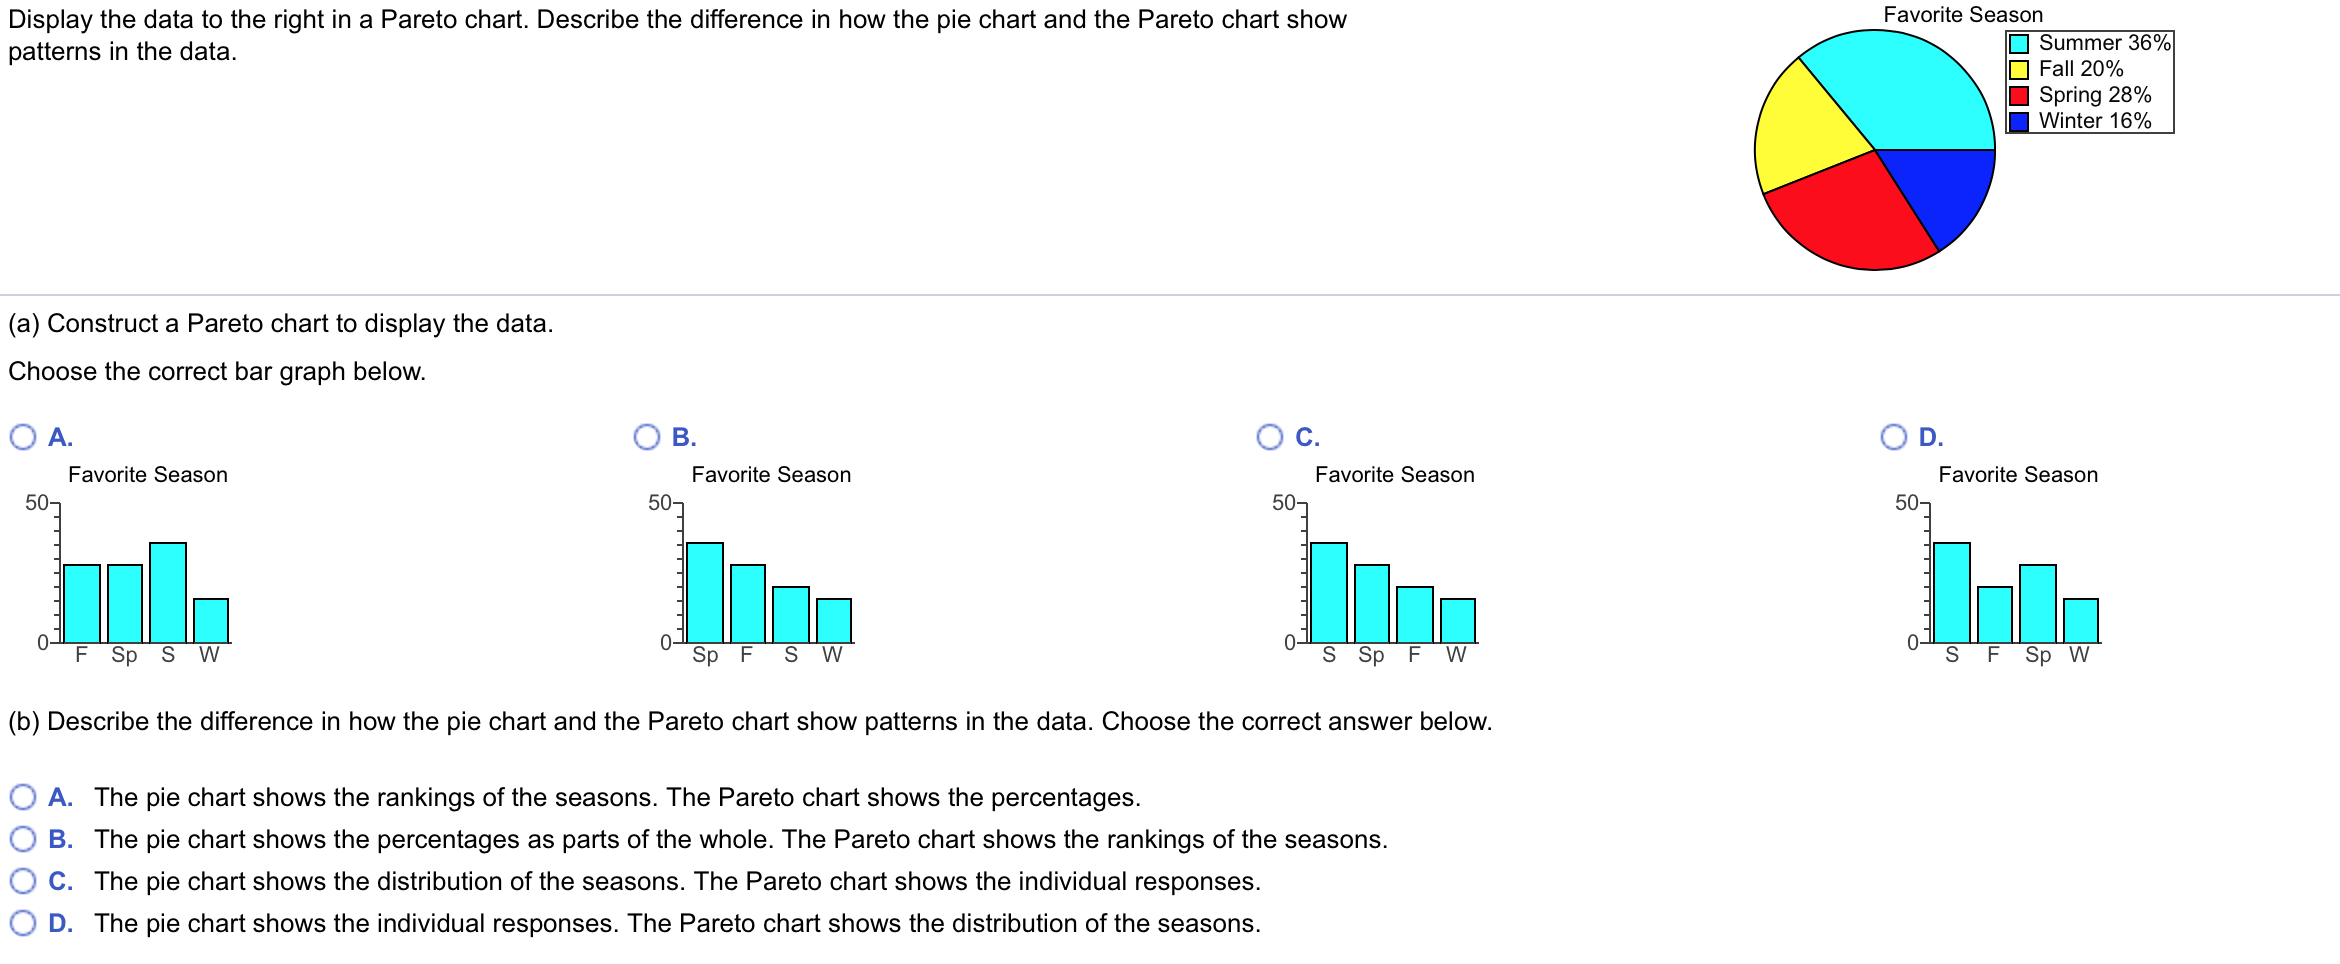 Display the data to the right in a pareto chart d chegg display the data to the right in a pareto chart d nvjuhfo Choice Image